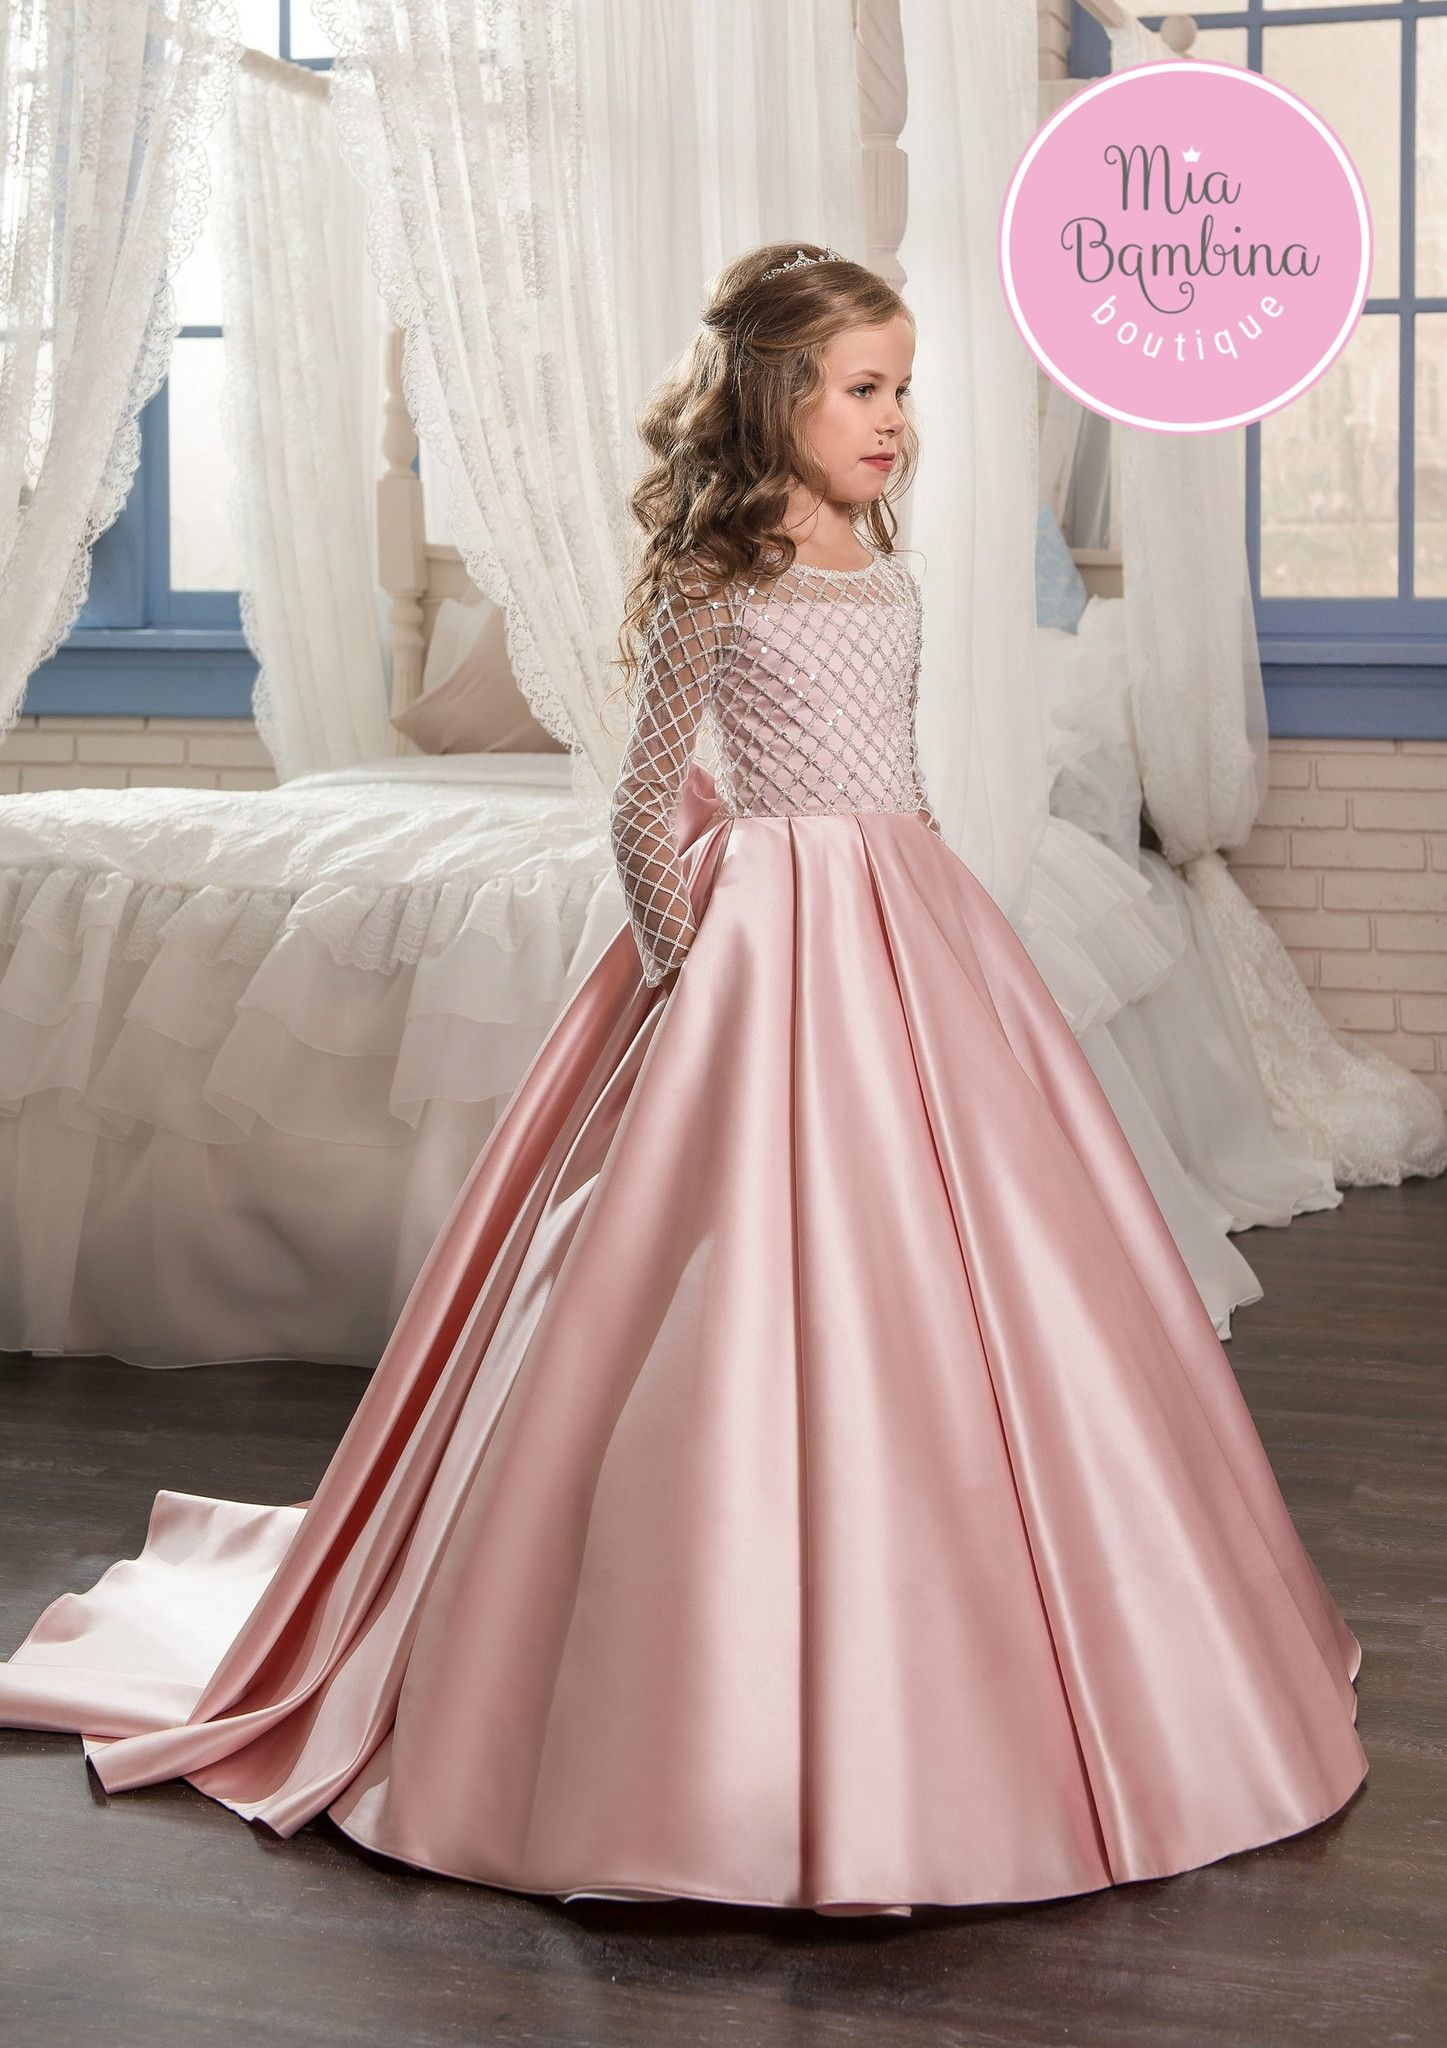 070614d1f520 Flower Girl Dresses Shop Toronto Flower Girl Dresses at Girls Dress ...